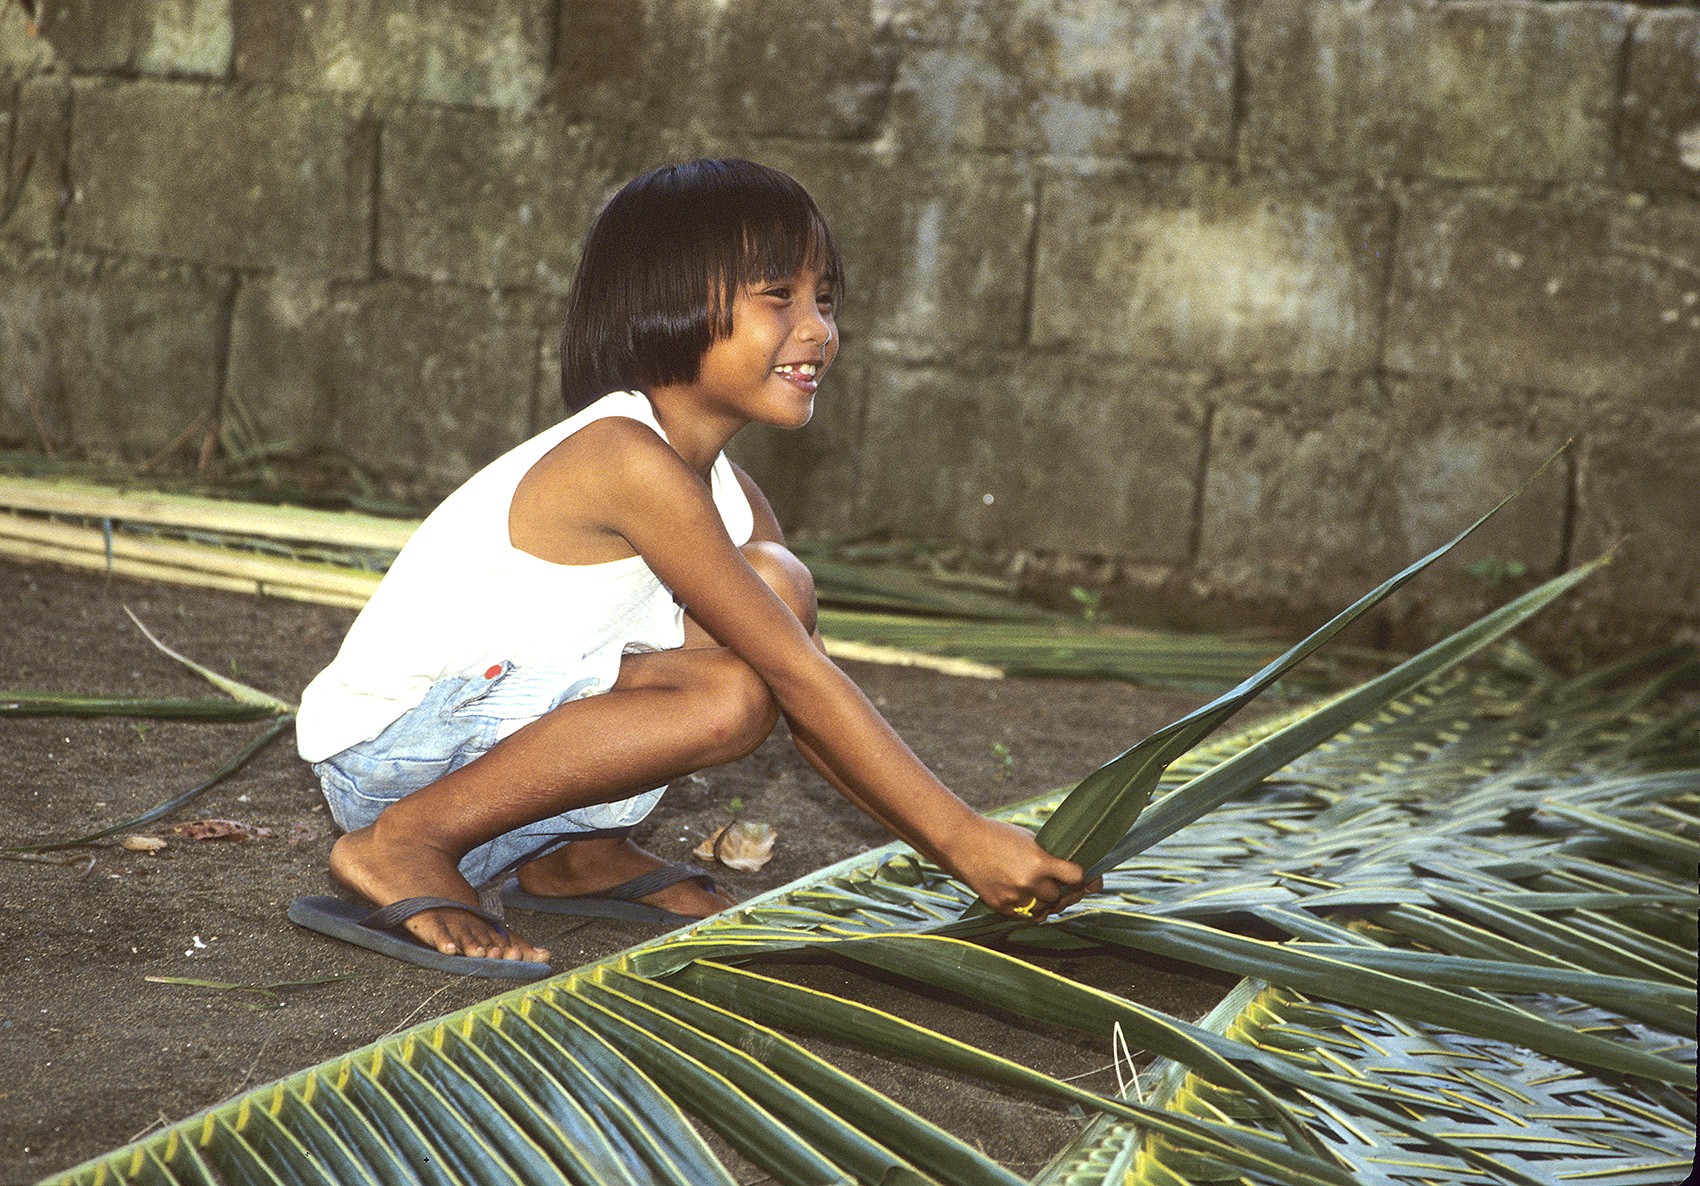 Weaving palm leaves, Philippines